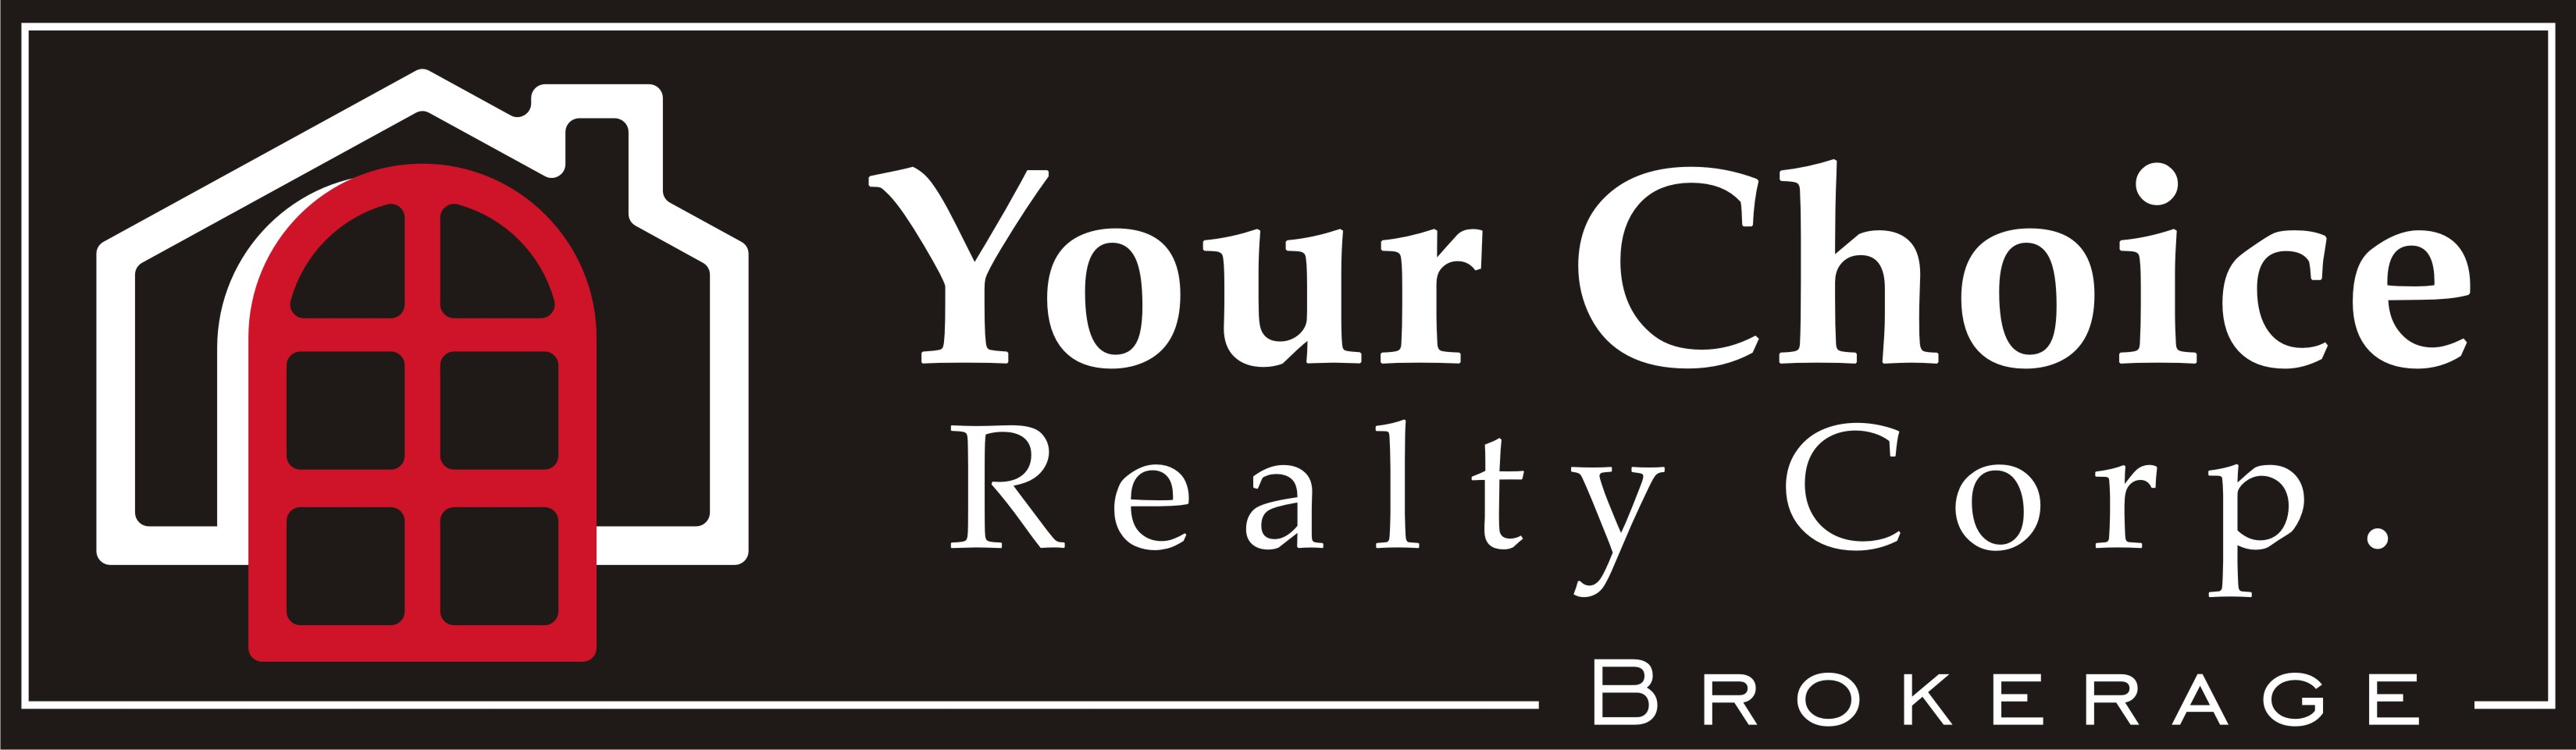 Your Choice Realty Corp., Brokerage*